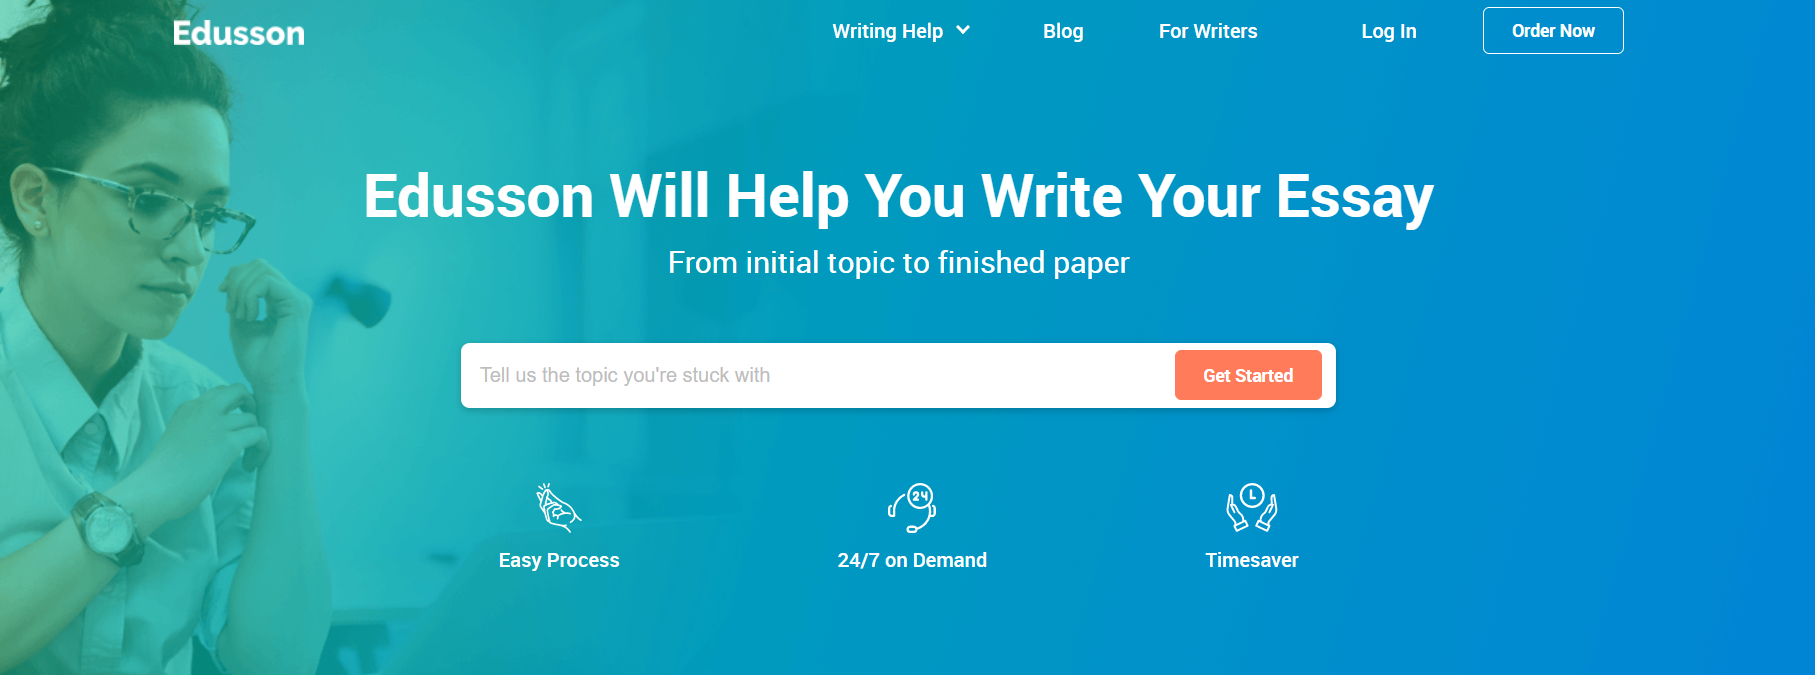 Top Essay Writing Service - Edusson